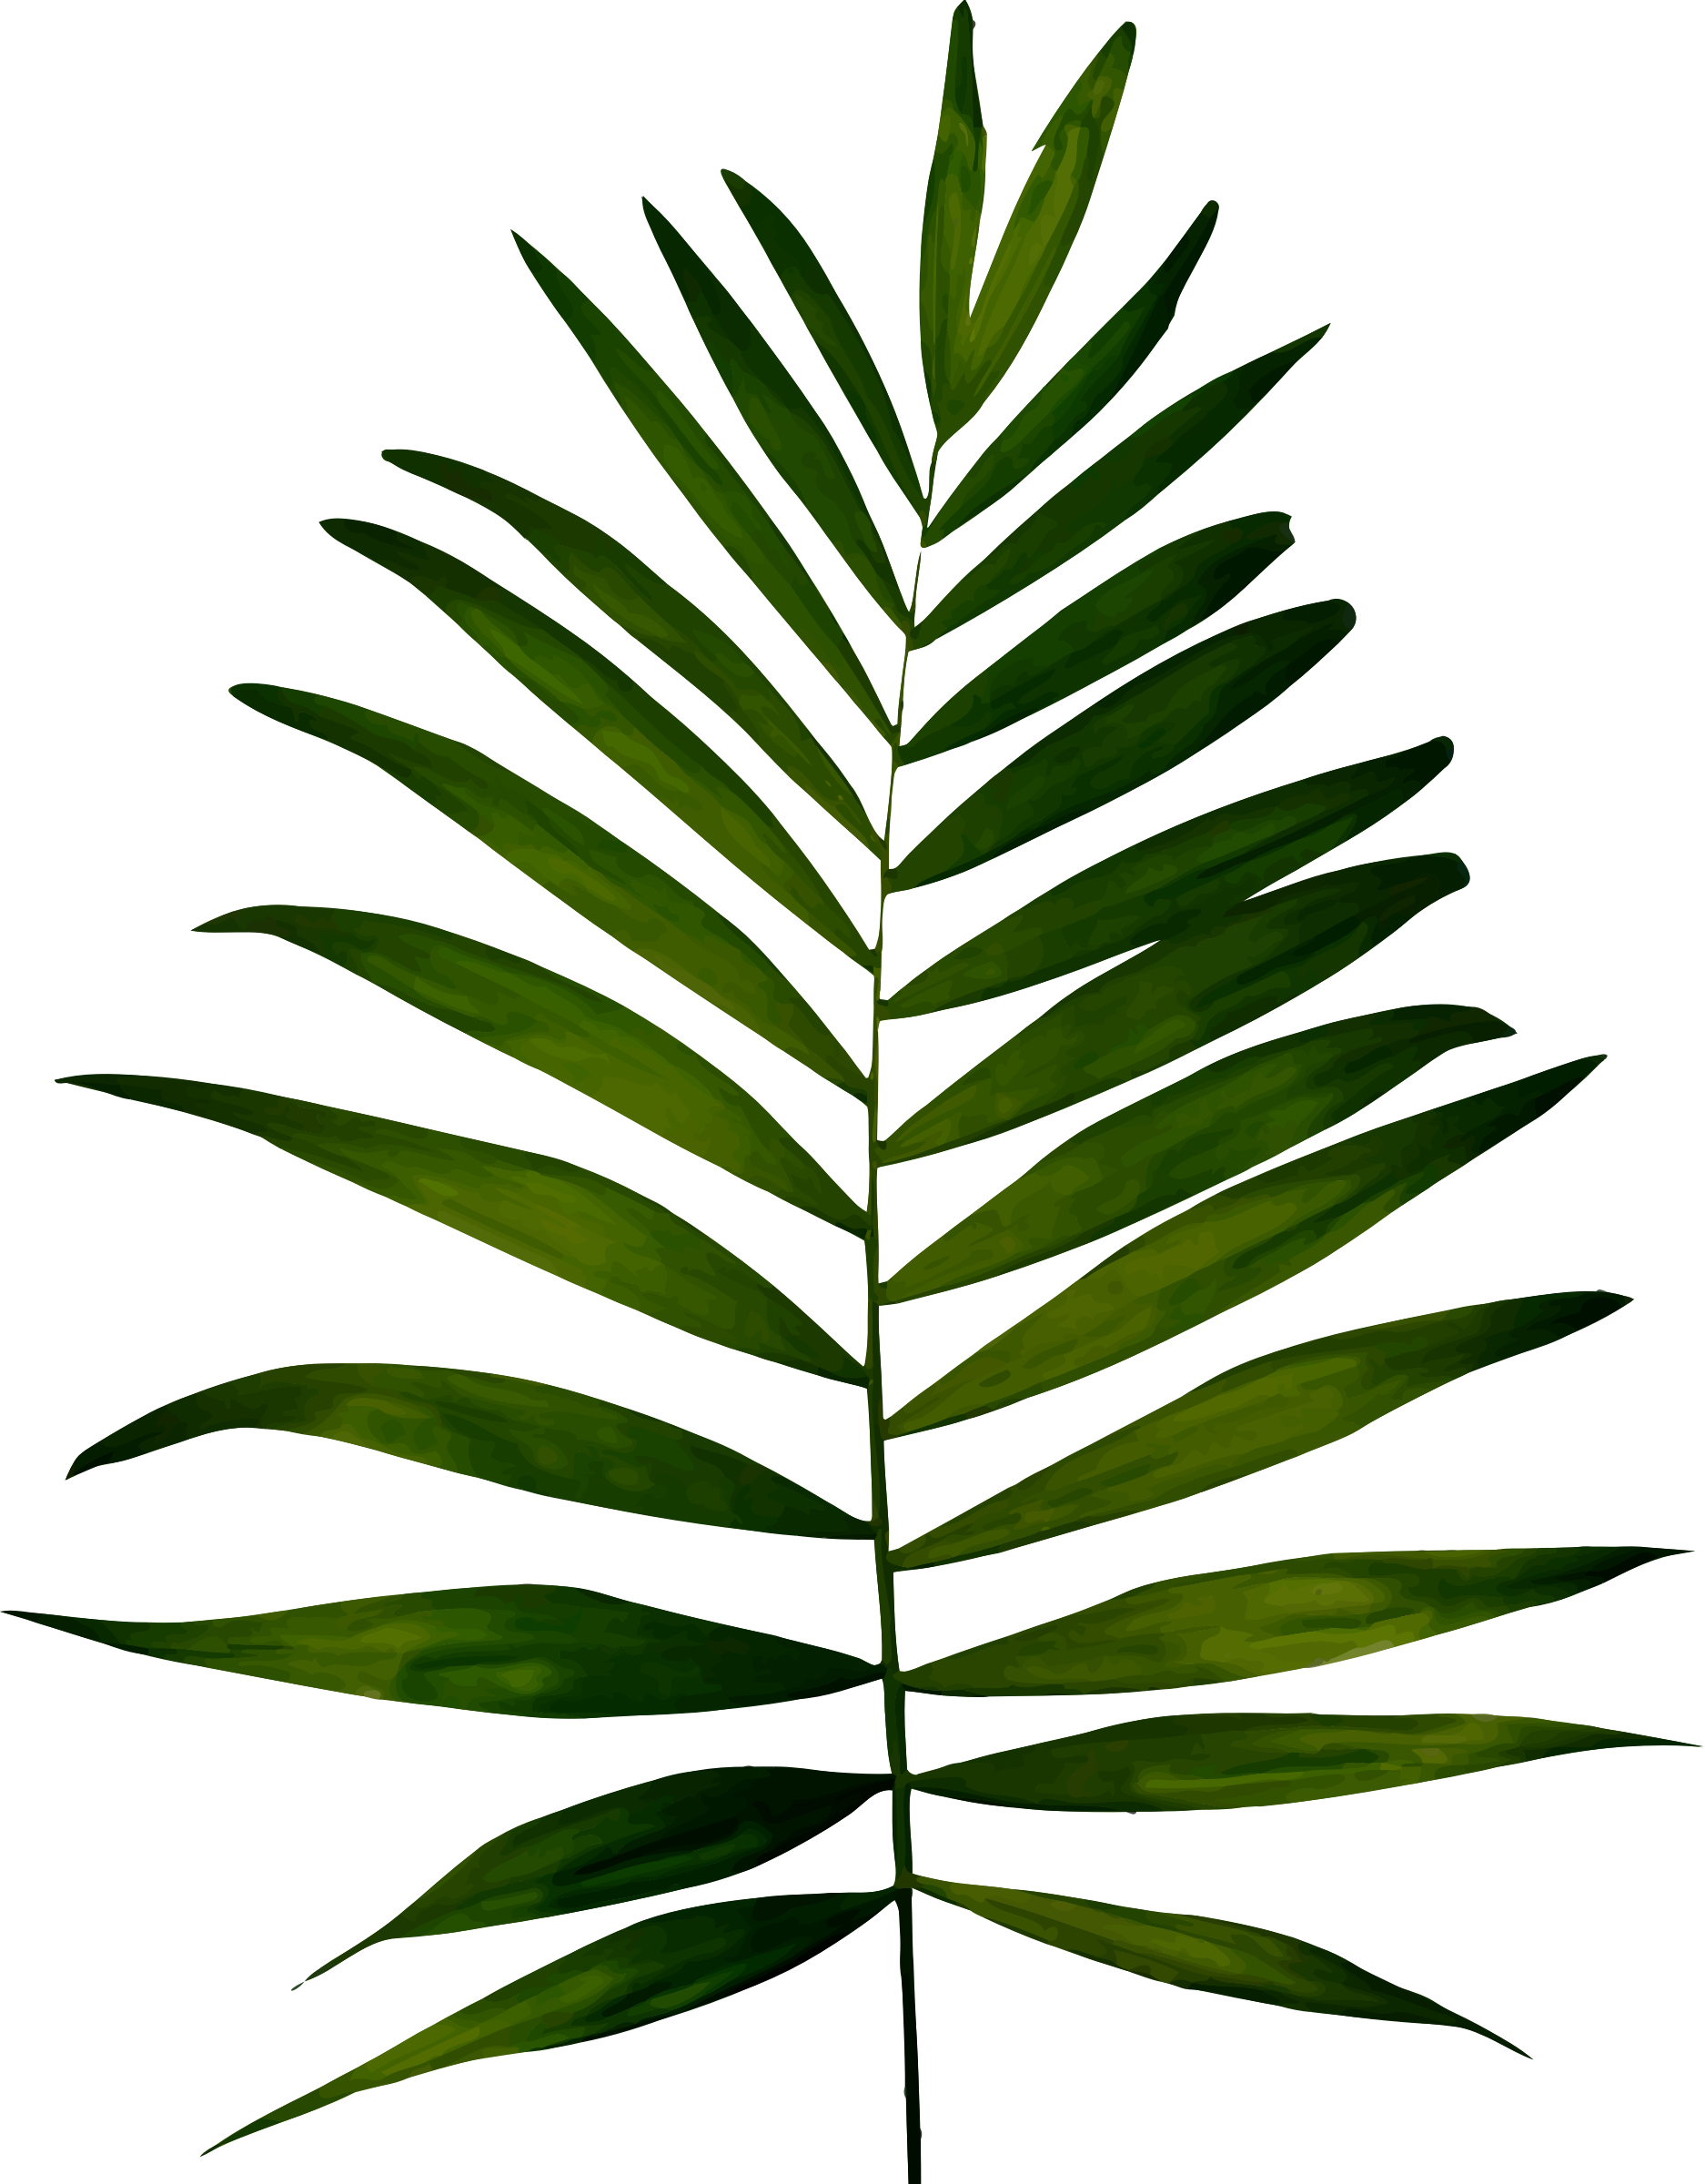 Fern 2 by Firkin